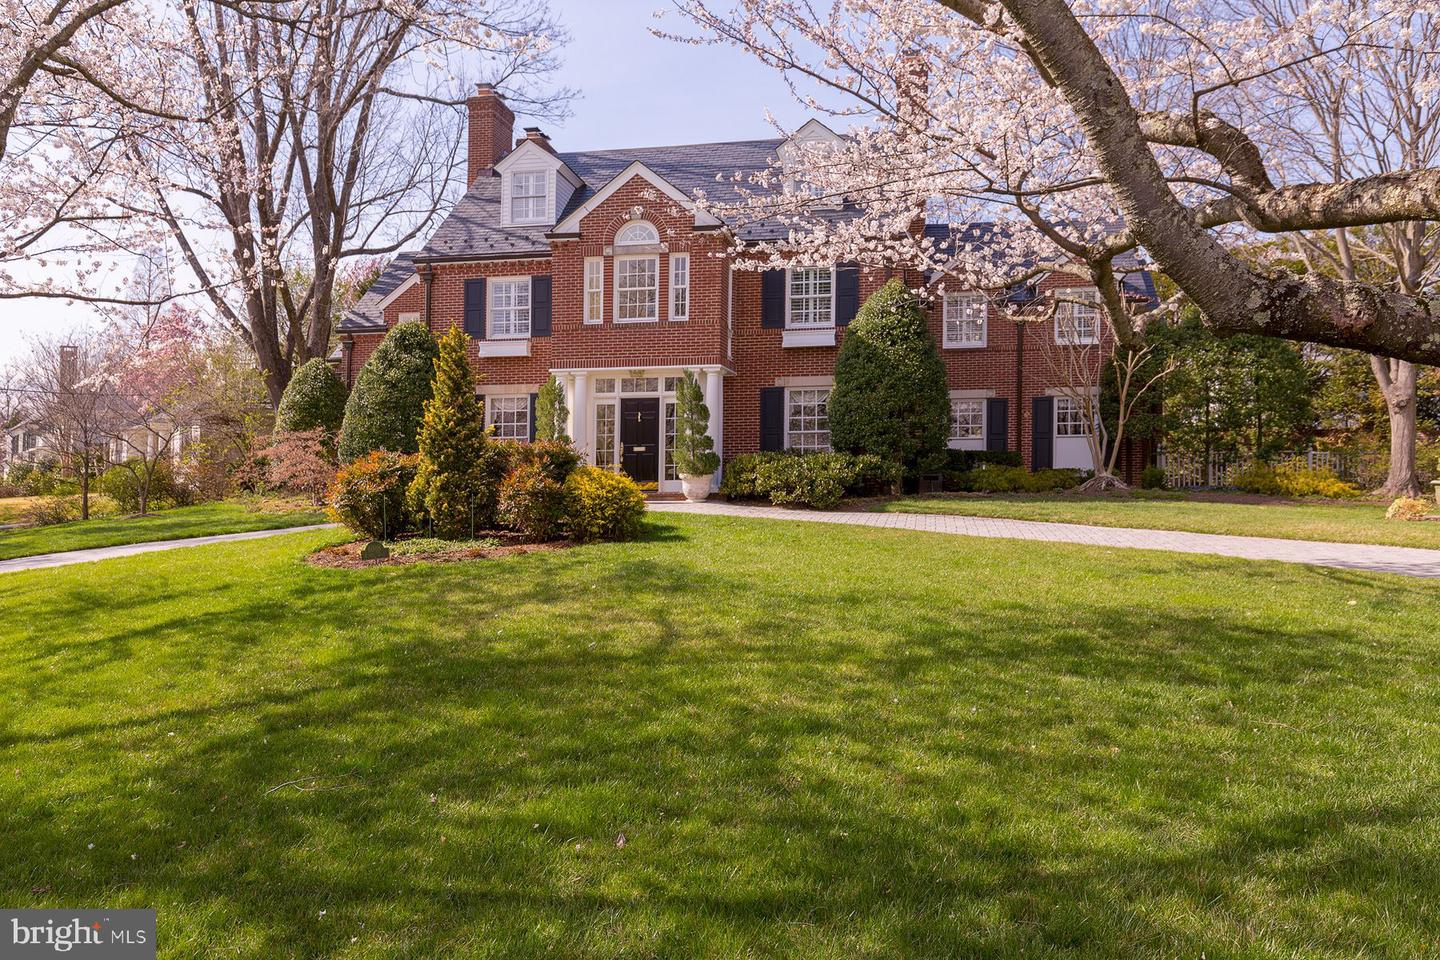 6008 KENNEDY DRIVE, CHEVY CHASE, Maryland